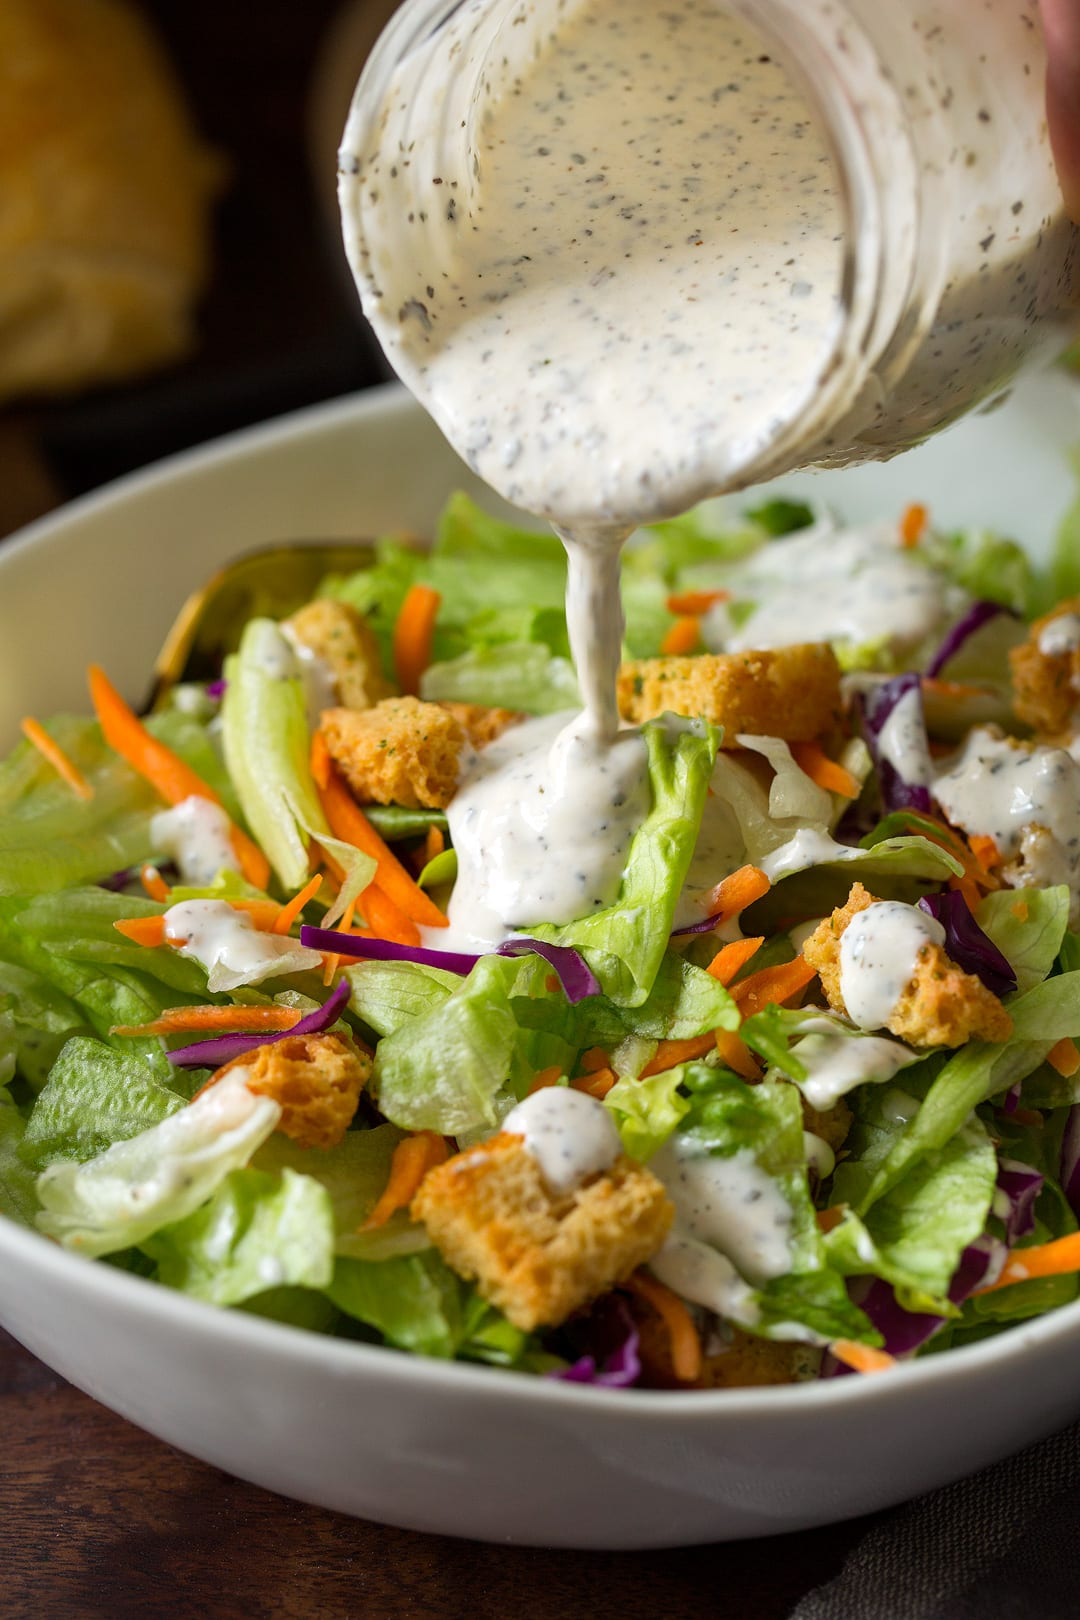 The Old Spaghetti Factory?s Creamy Pesto Salad Dressing